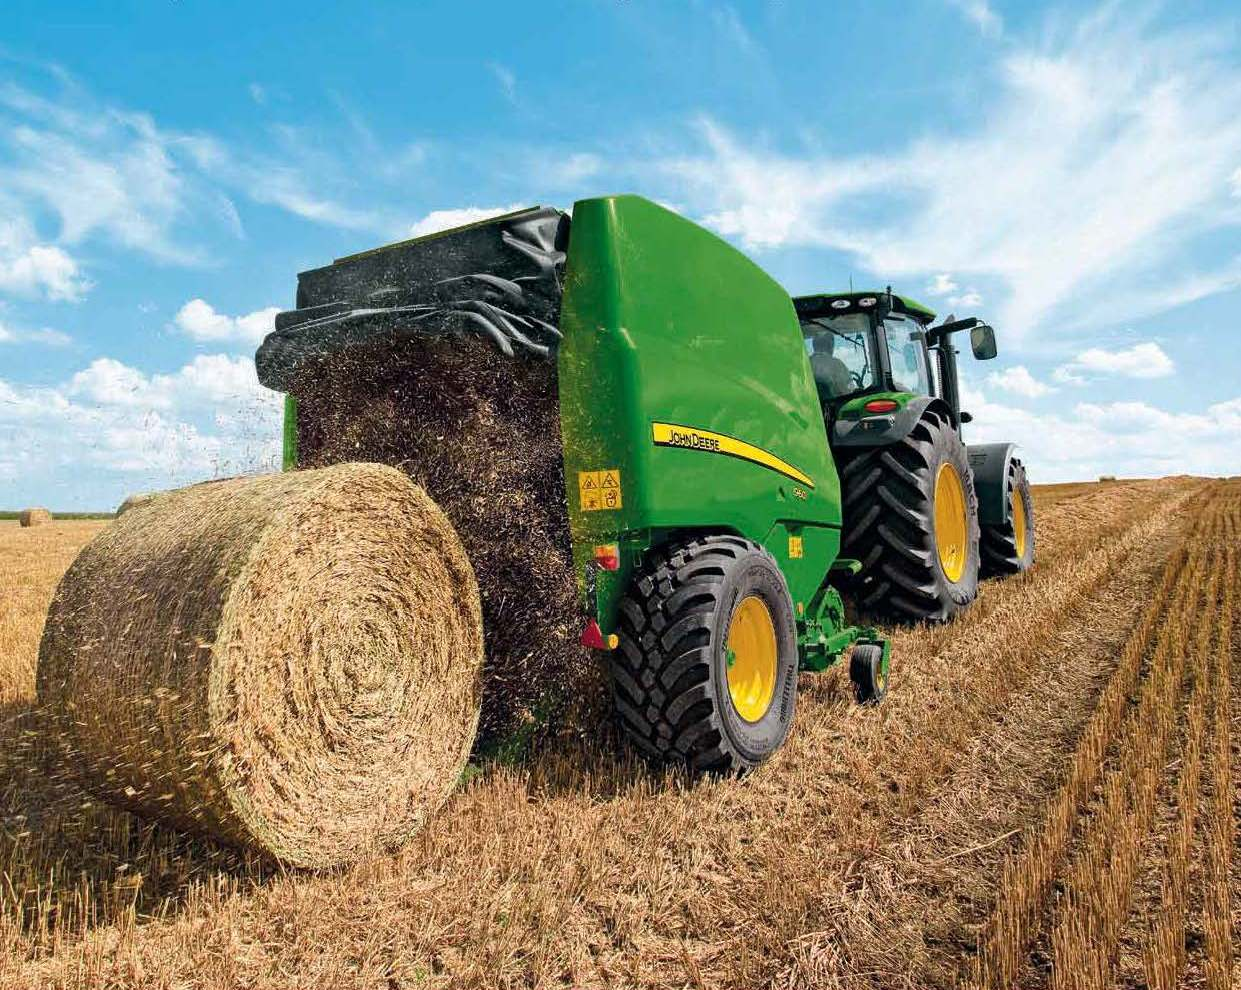 agriculture machinery Find great deals on ebay for agriculture machinery and used farm equipment shop with confidence.